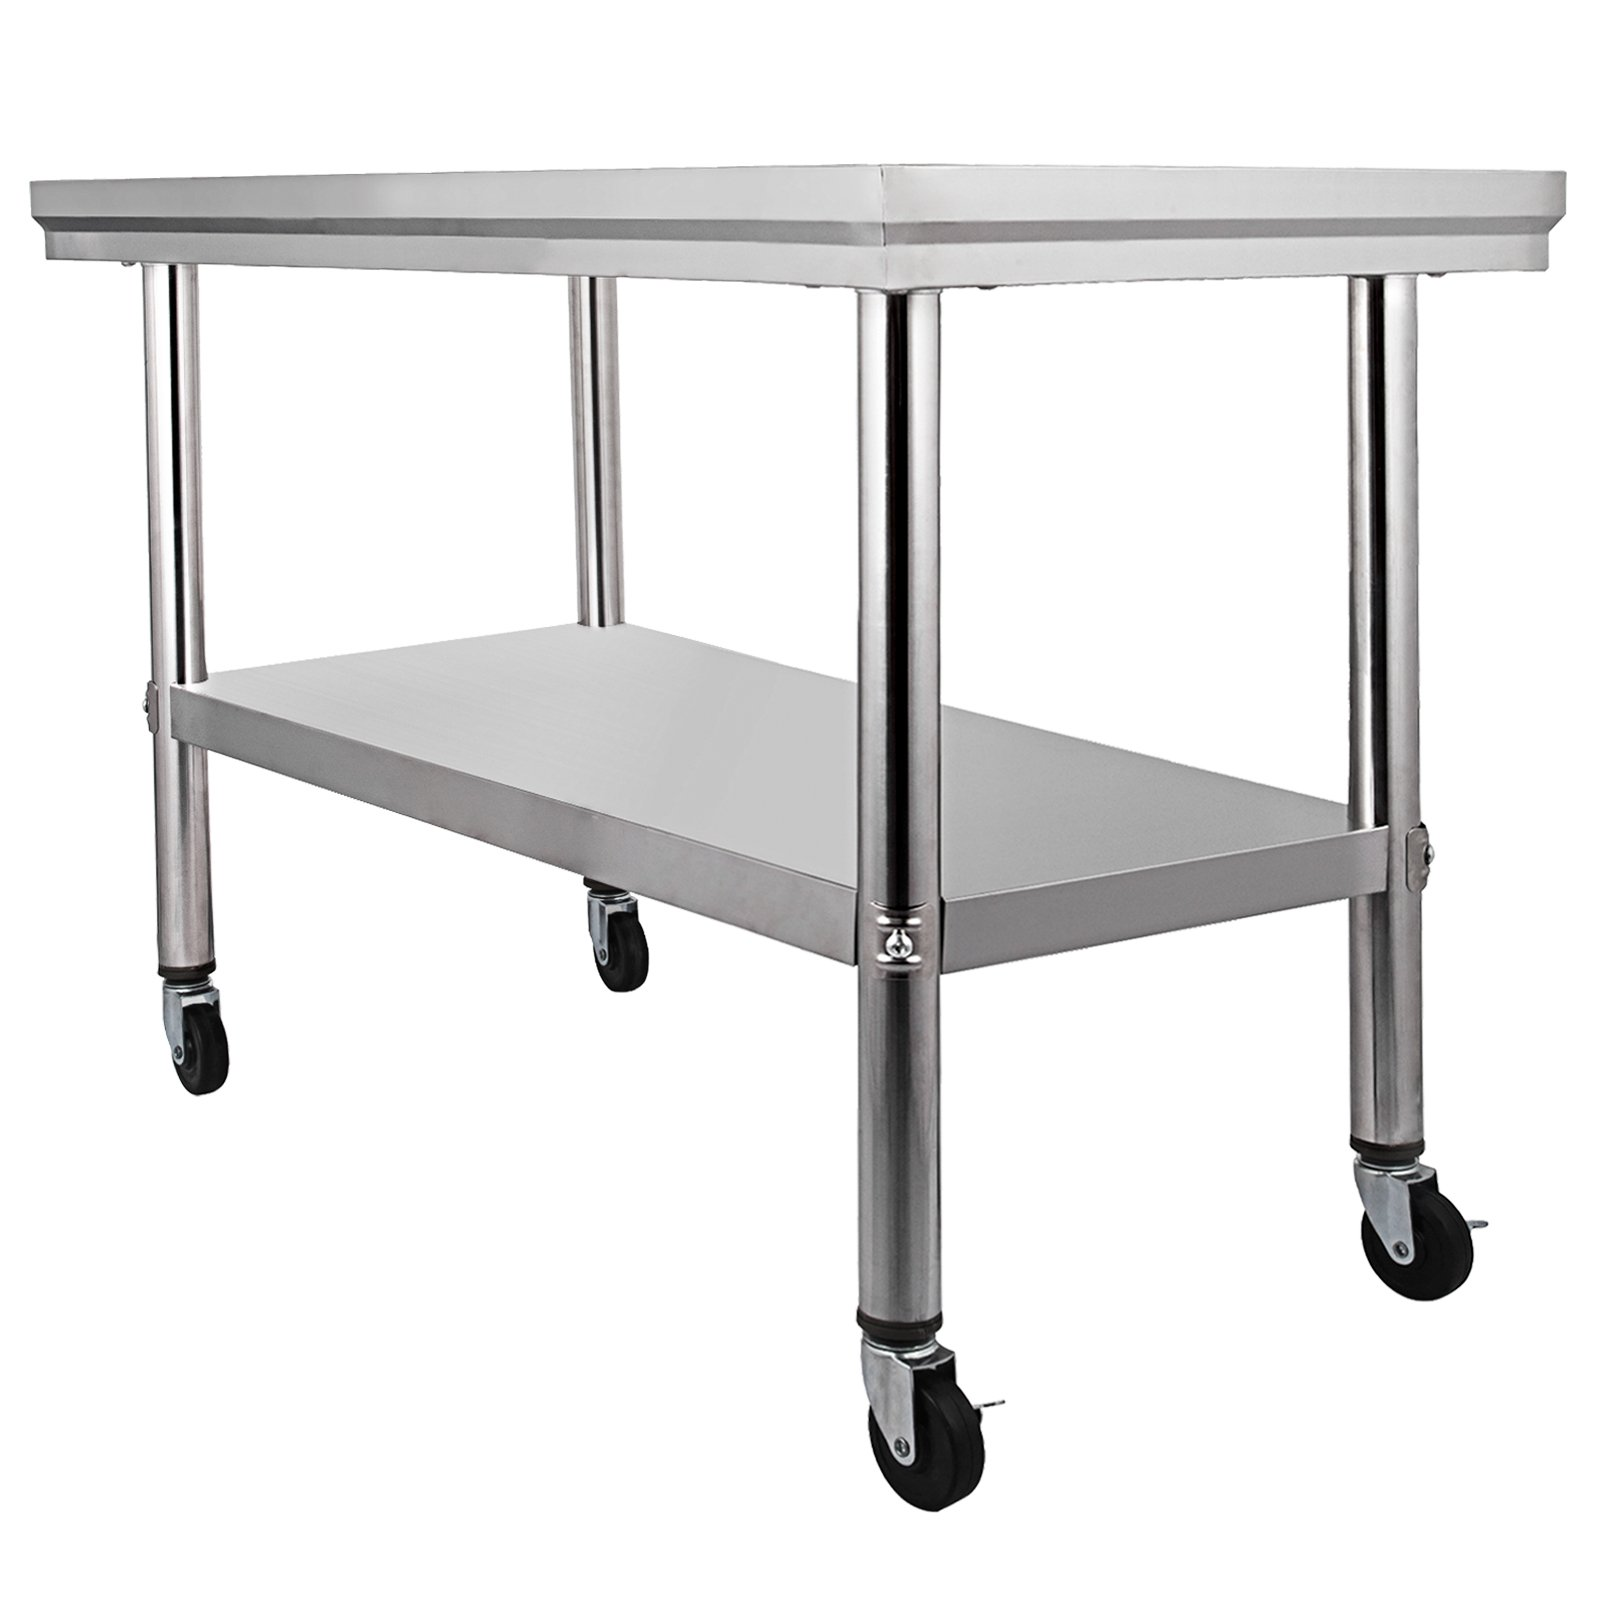 Mophorn NSF stainless Steel work table with wheels 36x24 Prep table with casters Heavy duty work table for commercial kitchen Restaurant Business Garage (36''x24'')